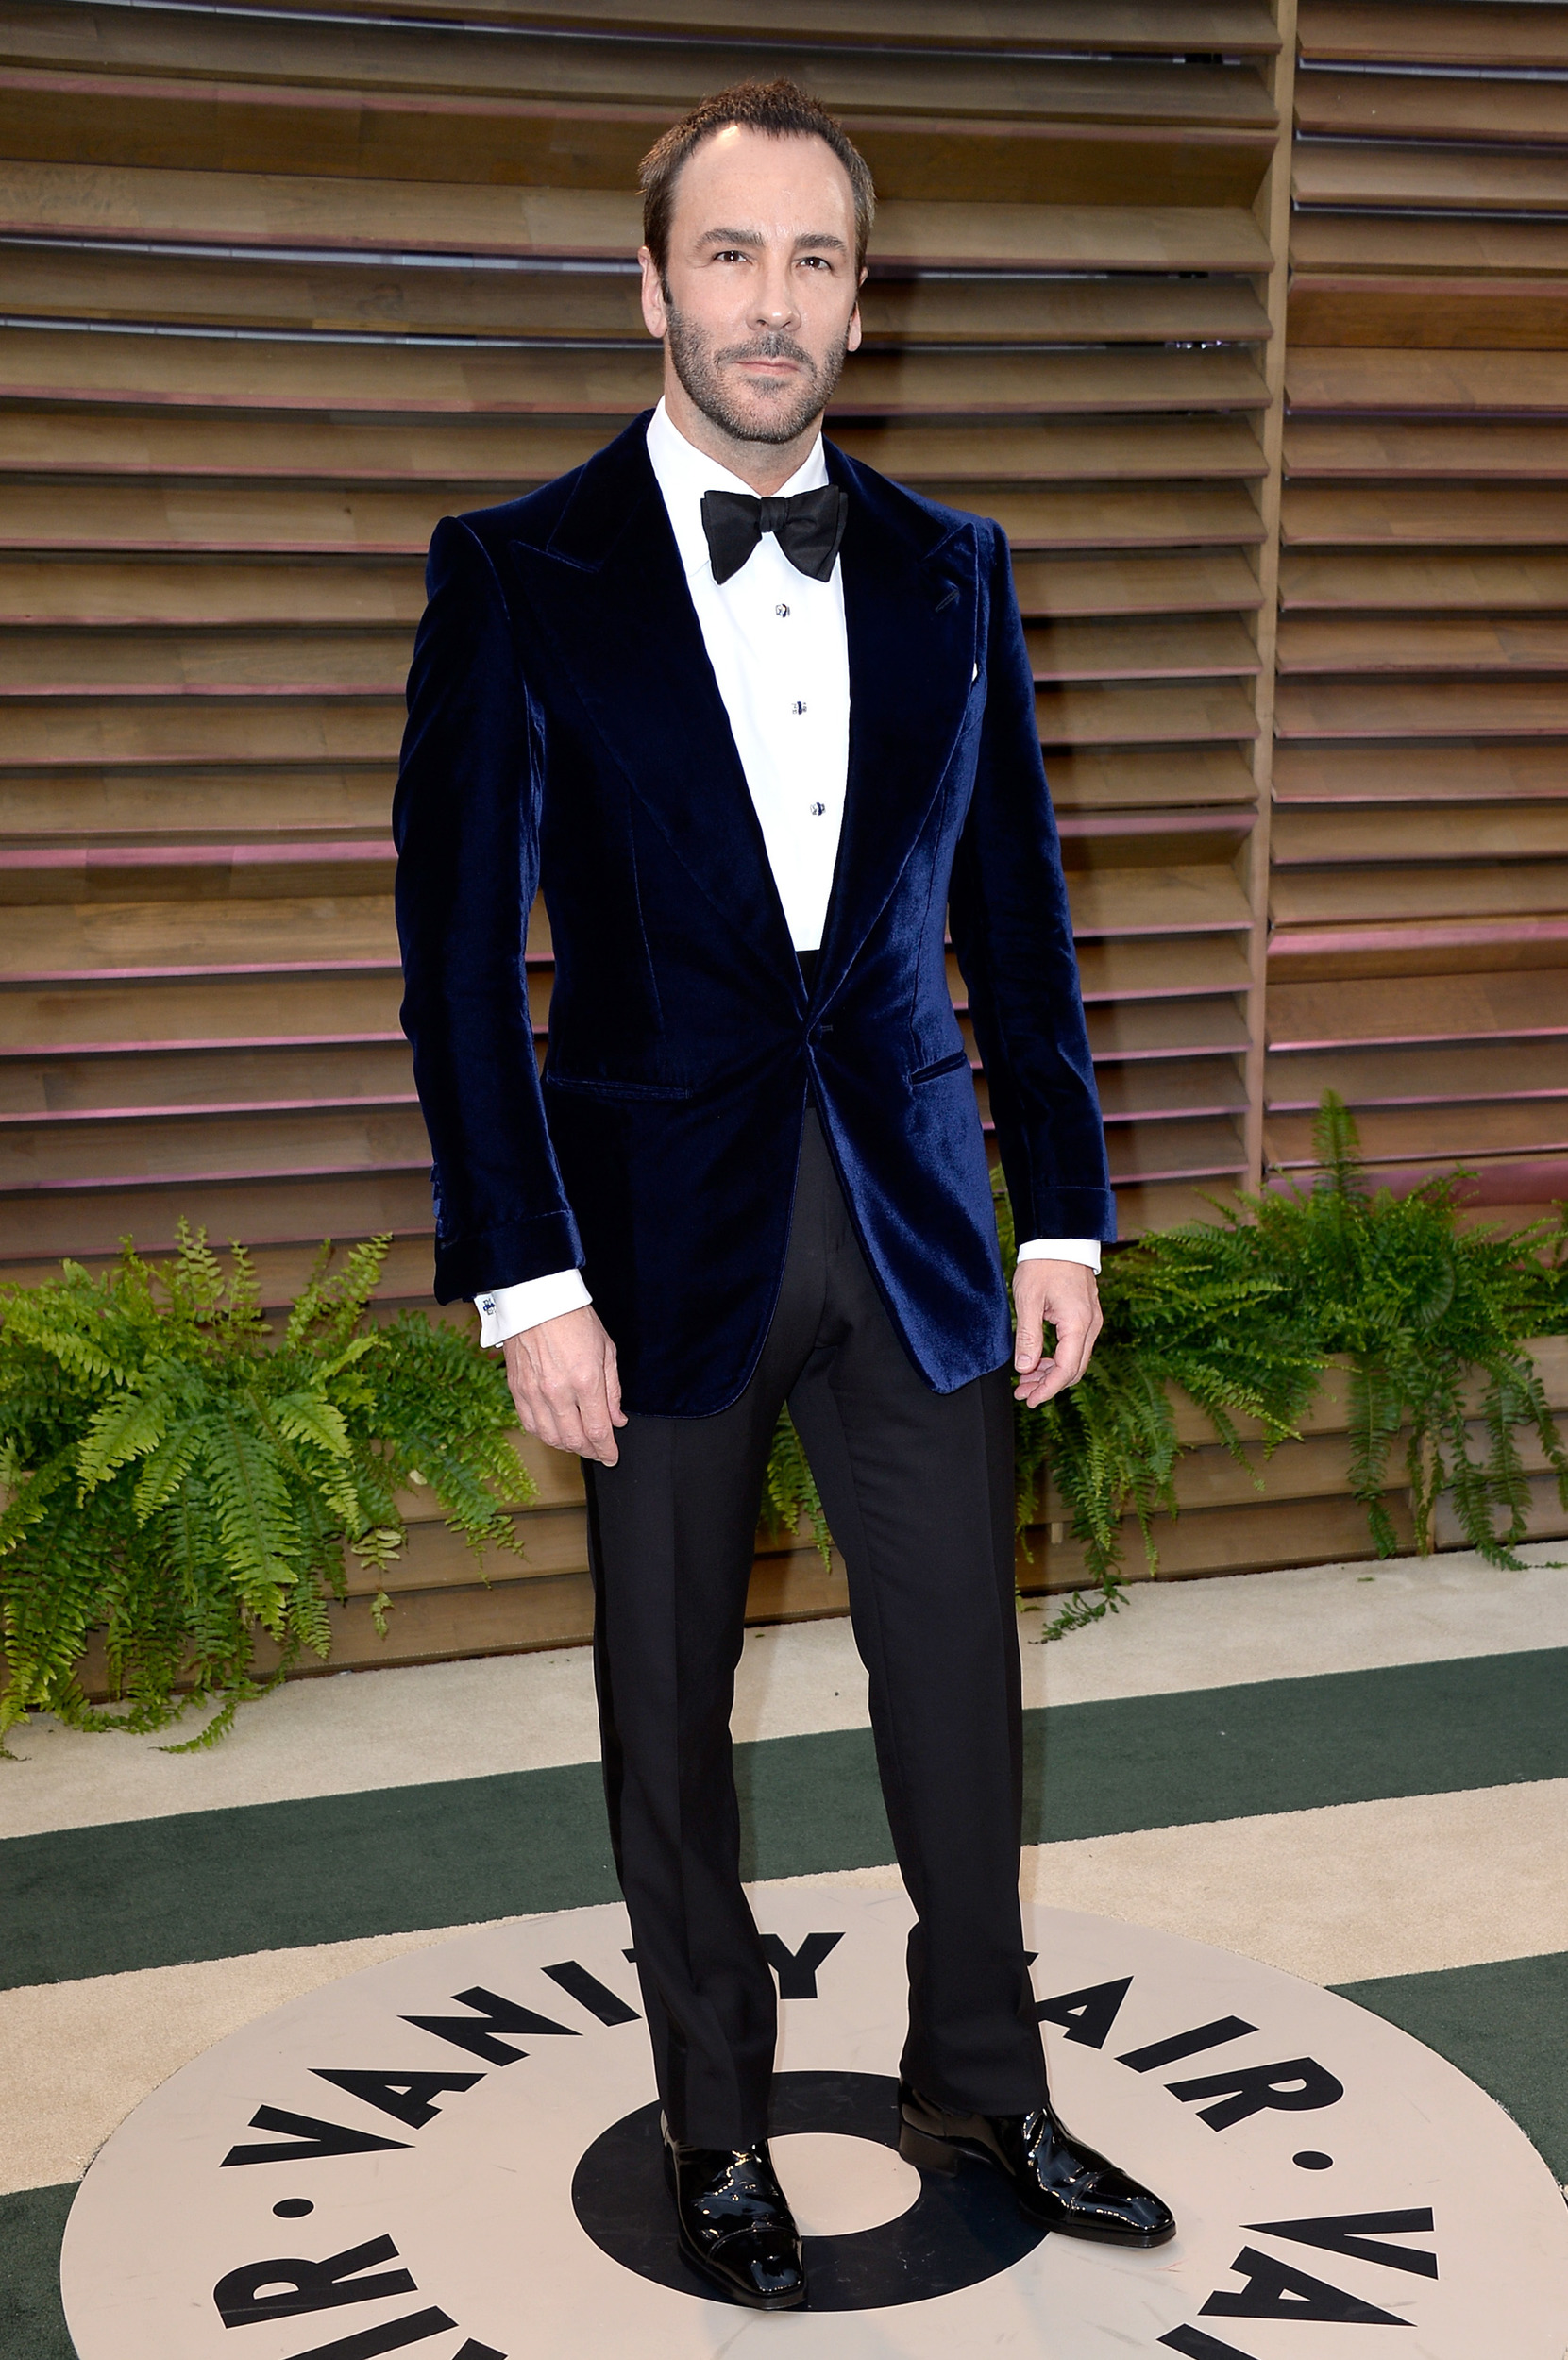 Tom Ford at the 2014 Vanity Fair Oscars After Party (mydaily.co.uk)